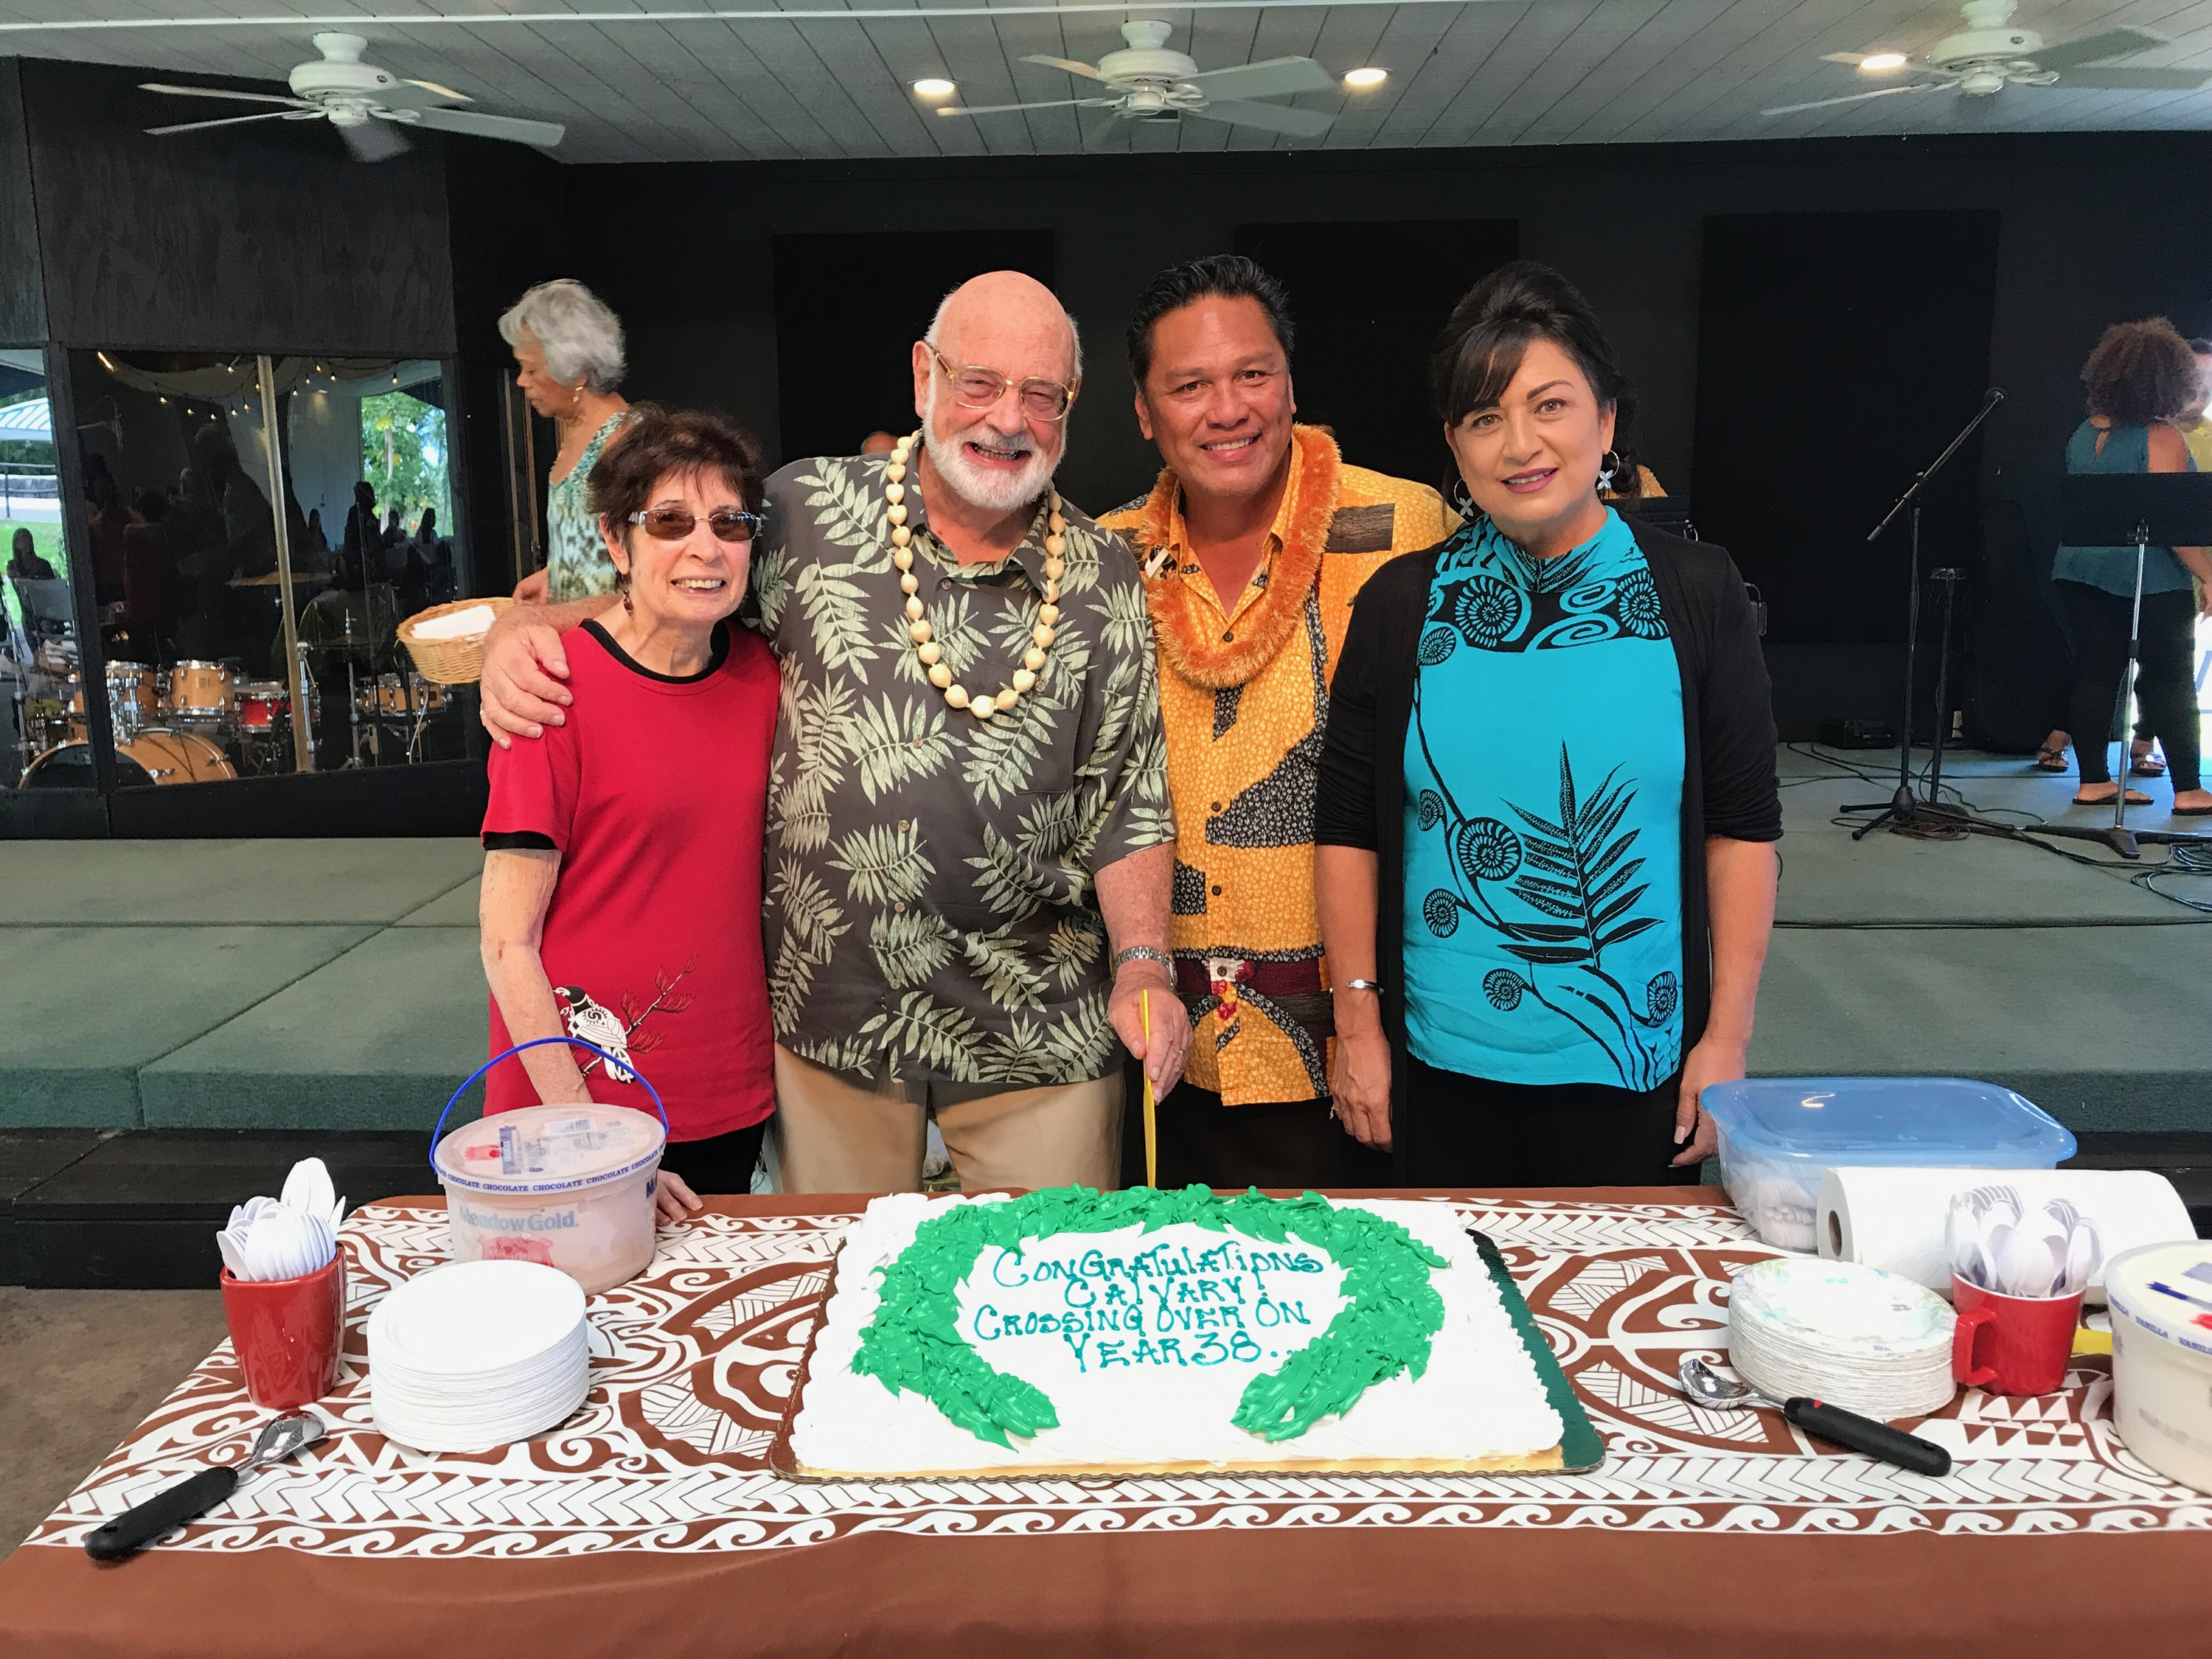 CCC Kona 38th Anniversary Celebratio